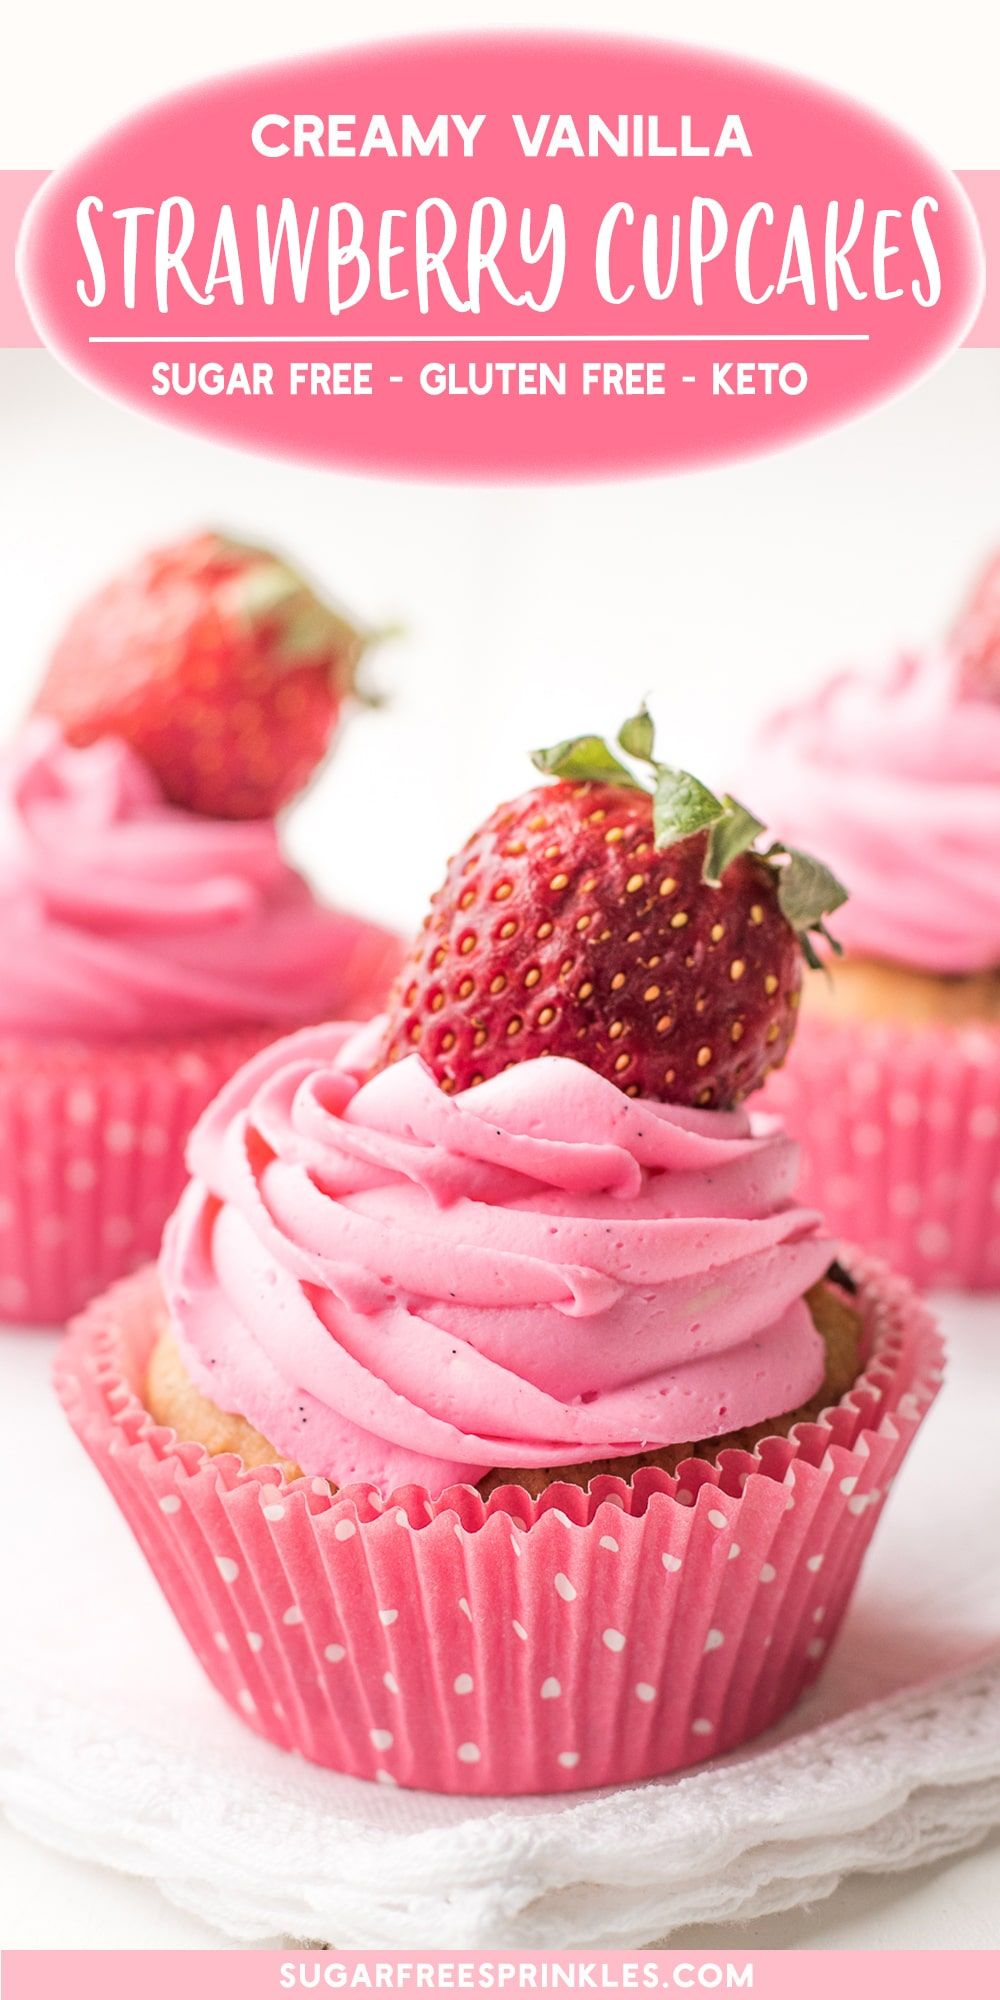 Sweet roasted strawberries are the stars in these low carb cupcakes.   These sugar-free cupcakes are moist and delicious and topped with a pipeable whip cream vanilla frosting.  No sugar, no grains, low carb, keto friendly and gluten-free!   A great low carb baking recipe to add to your rotation. #lowcarbrecipes